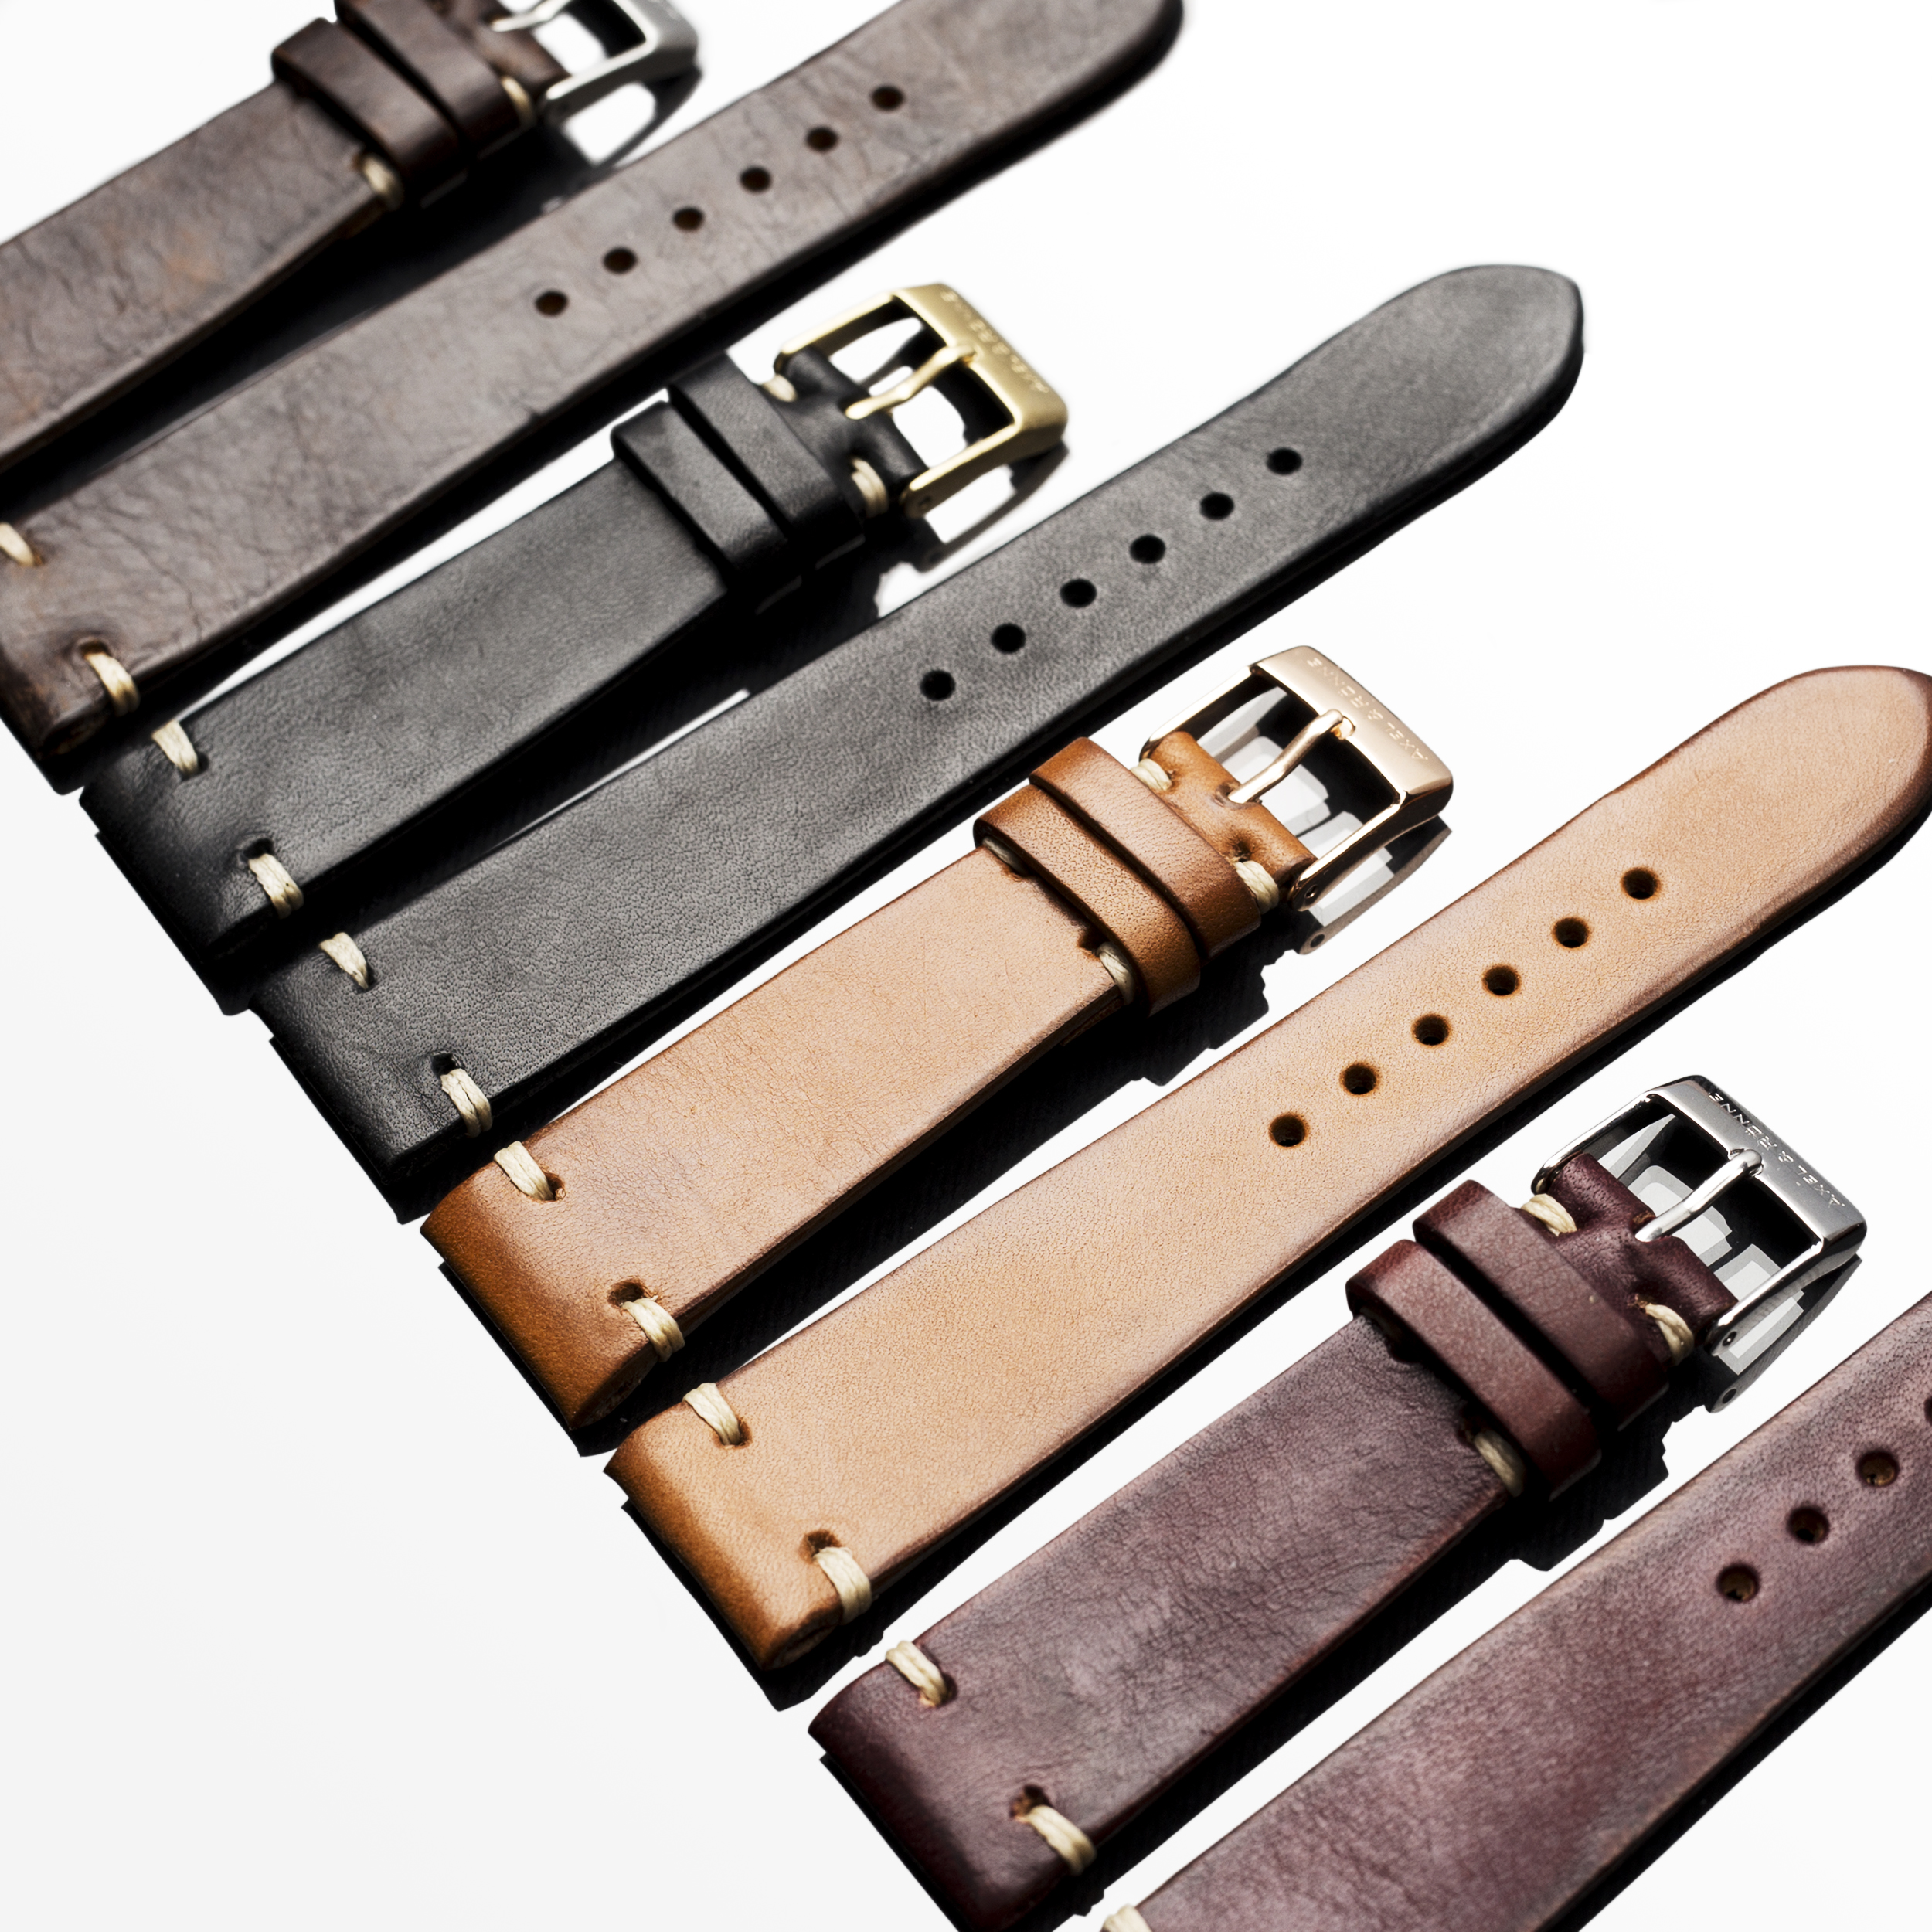 Leather straps handmade in Italy - Read more...